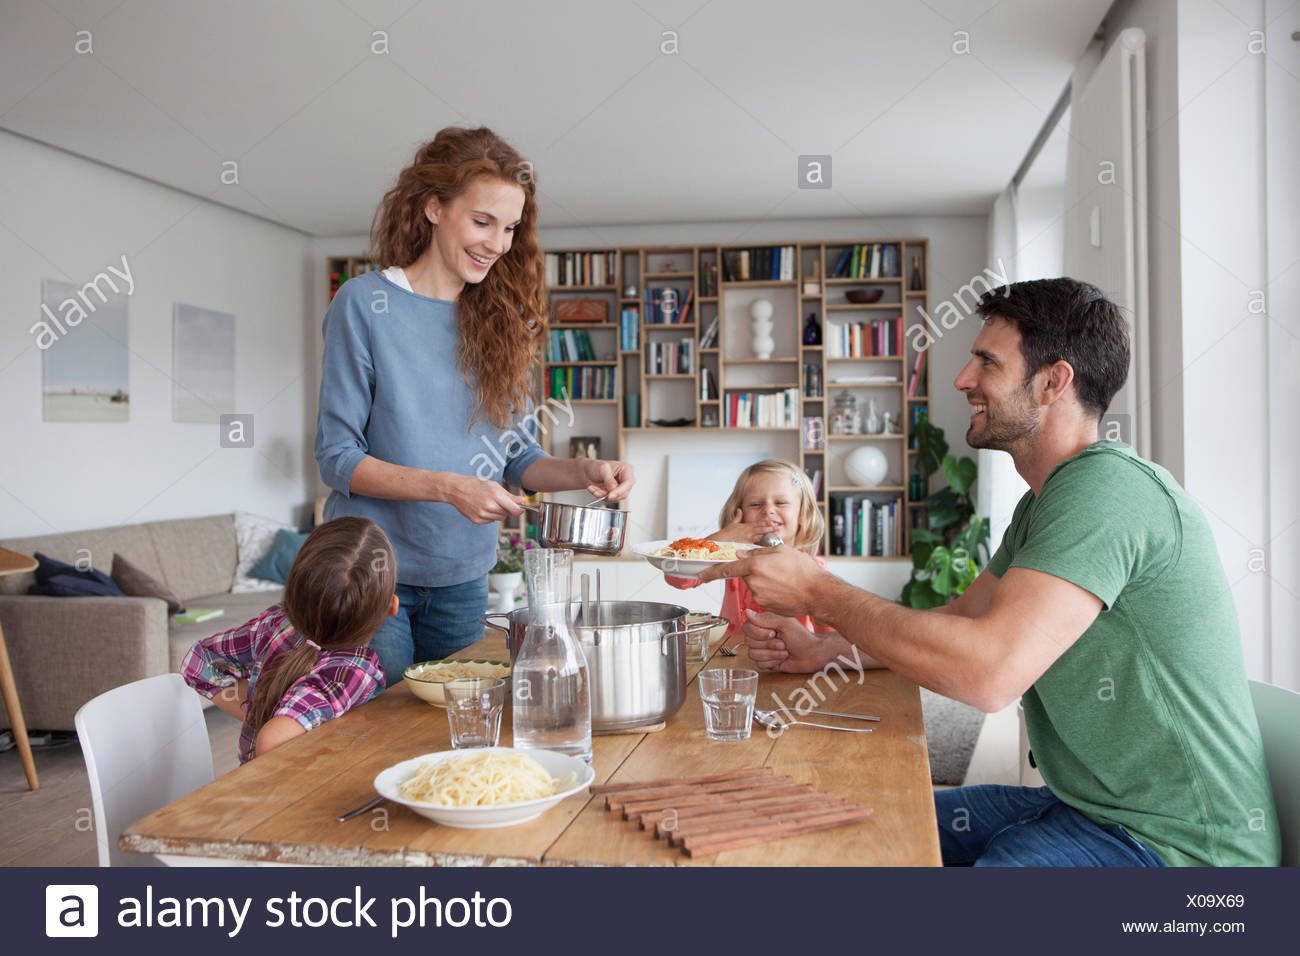 Couple with two children going to have lunch together at home - Stock Image